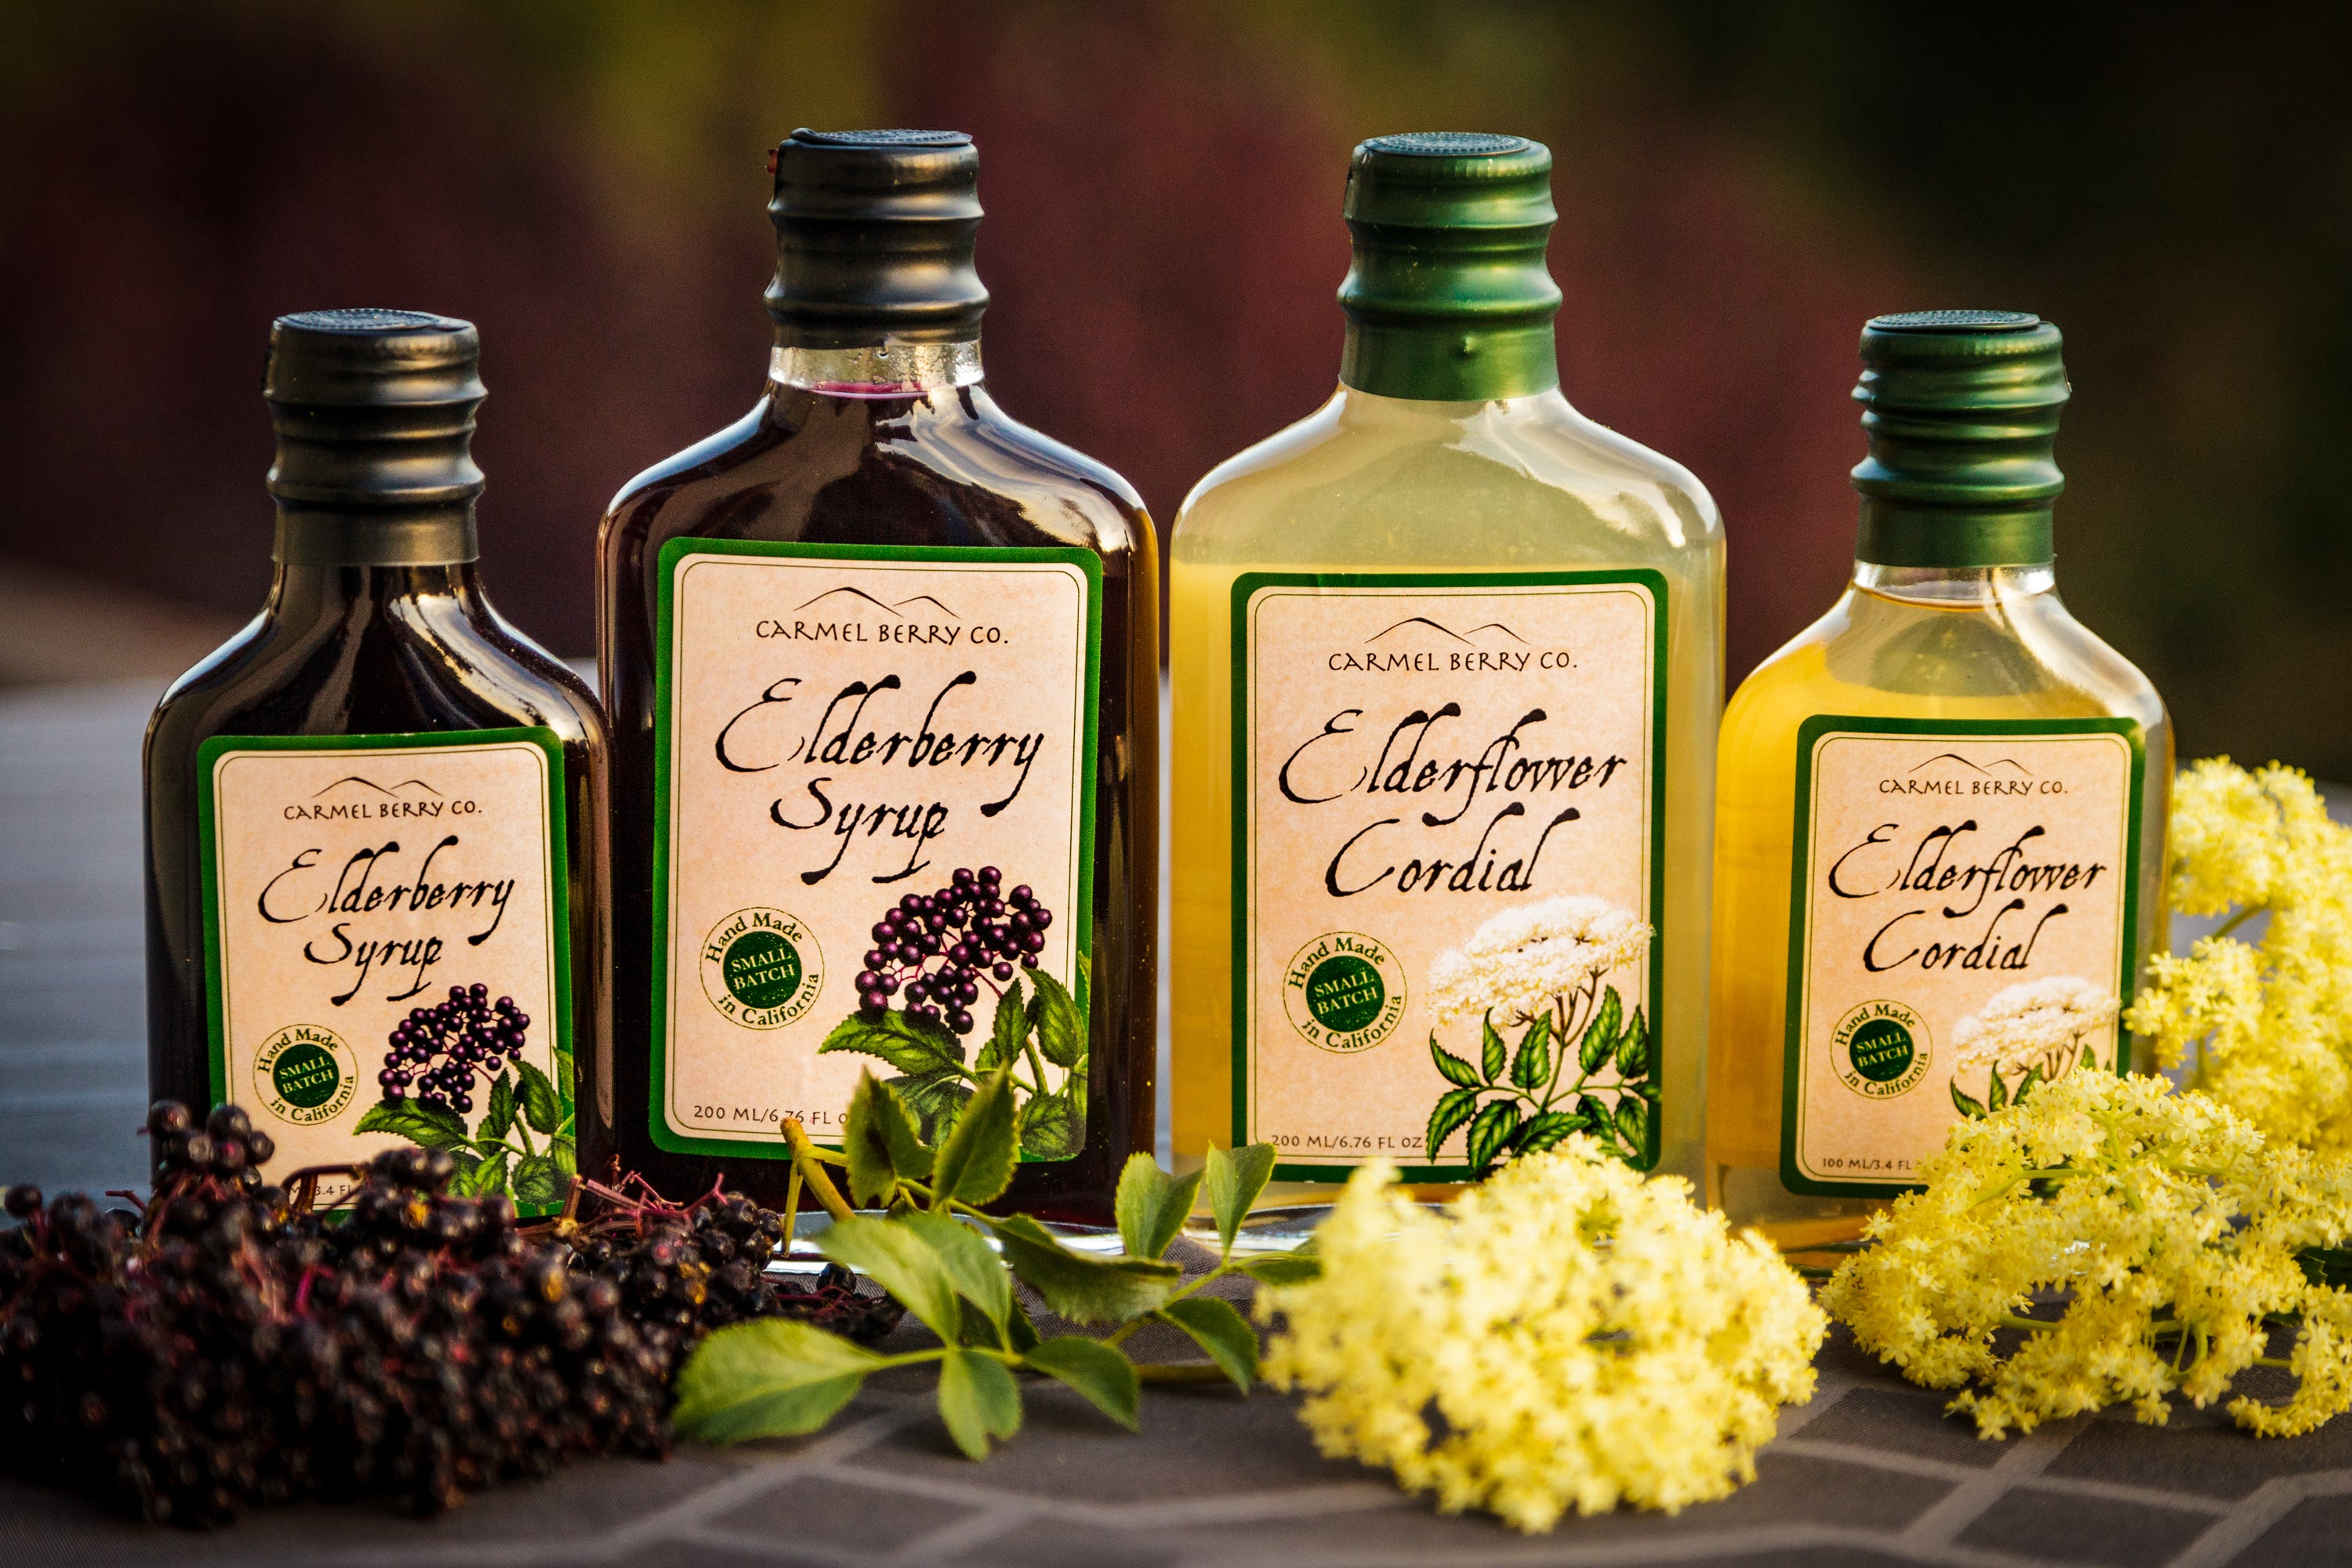 Carmel Berry Co. -- Elderberry & Elderflower Syrup